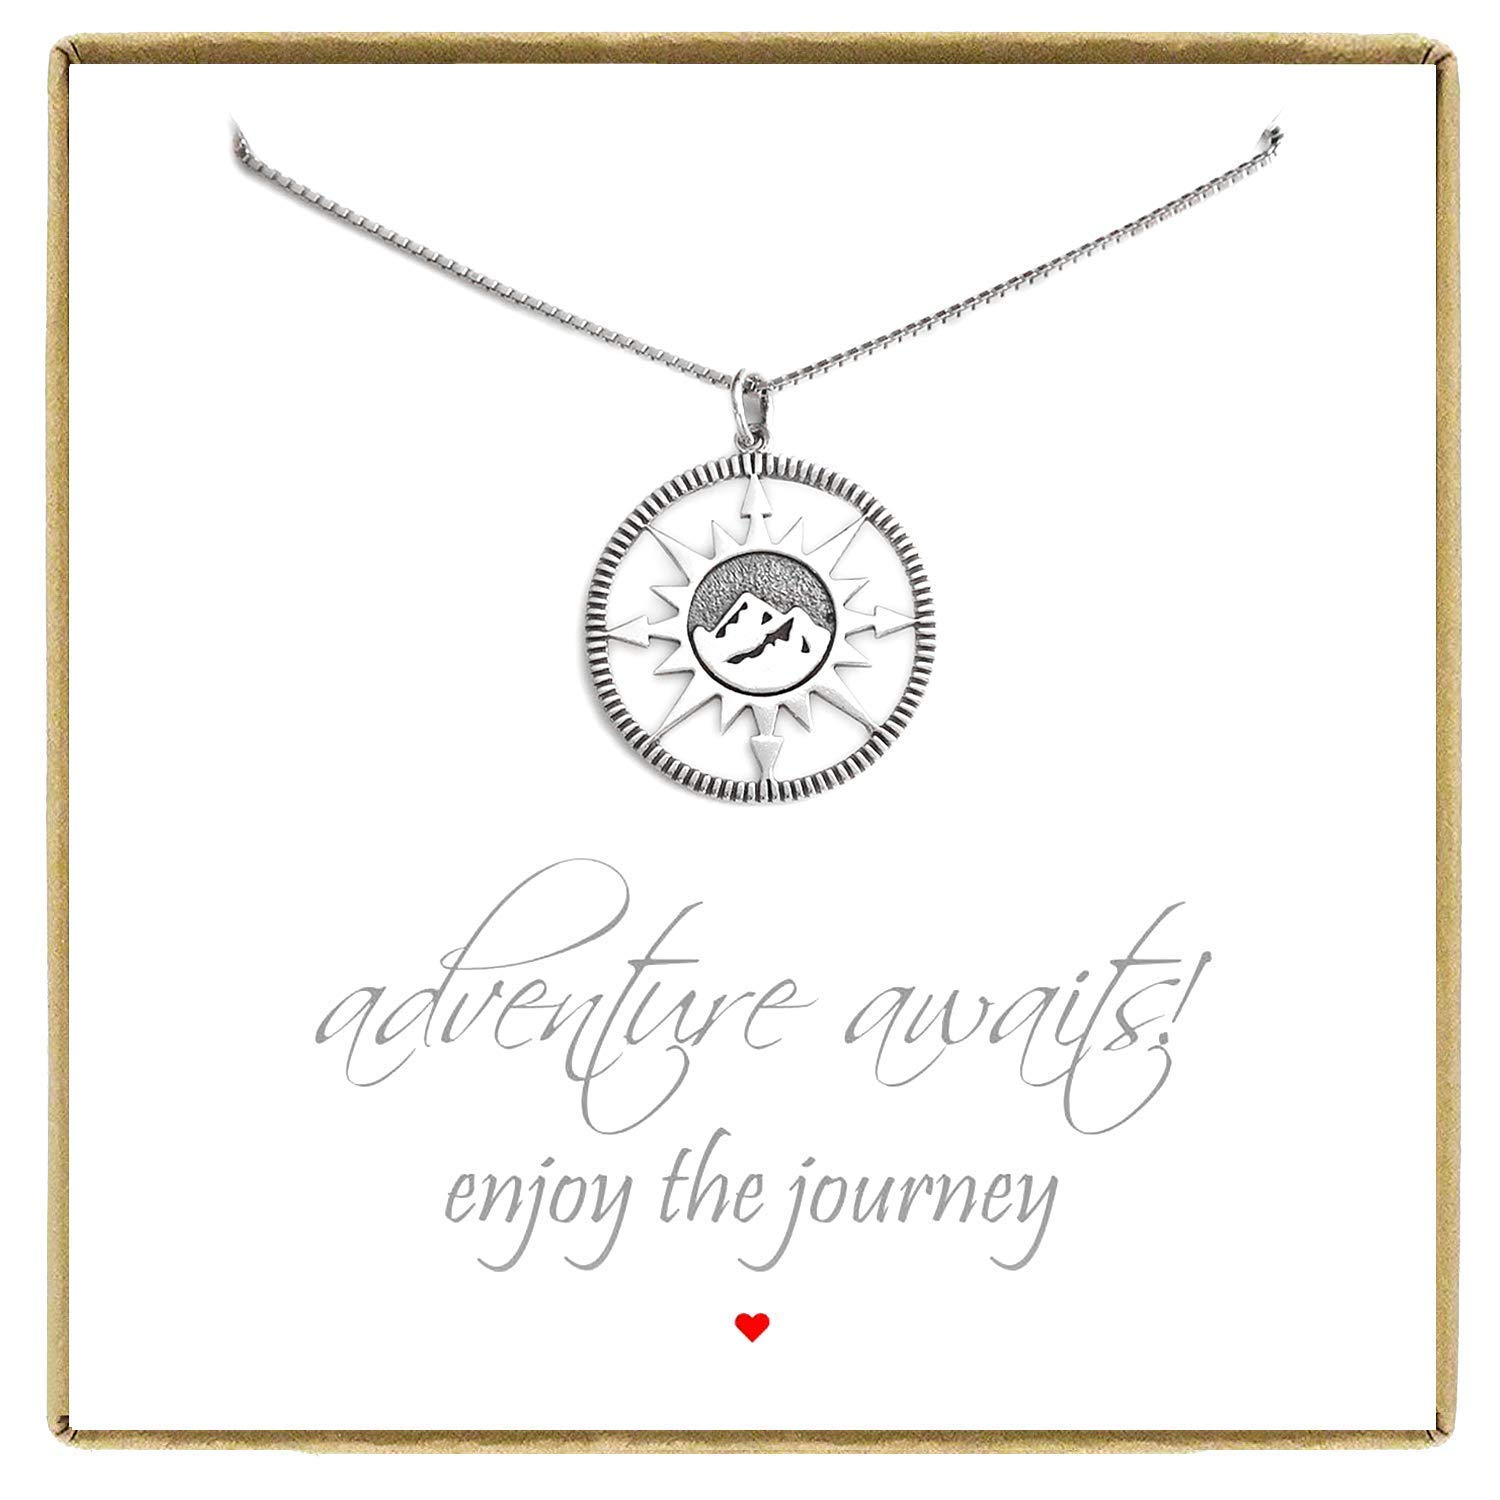 Retirement Gift Necklace,18 inches Graduation Gift Necklace Best Friend Gift Sterling Silver Compass Necklace Adventure Awaits Necklace